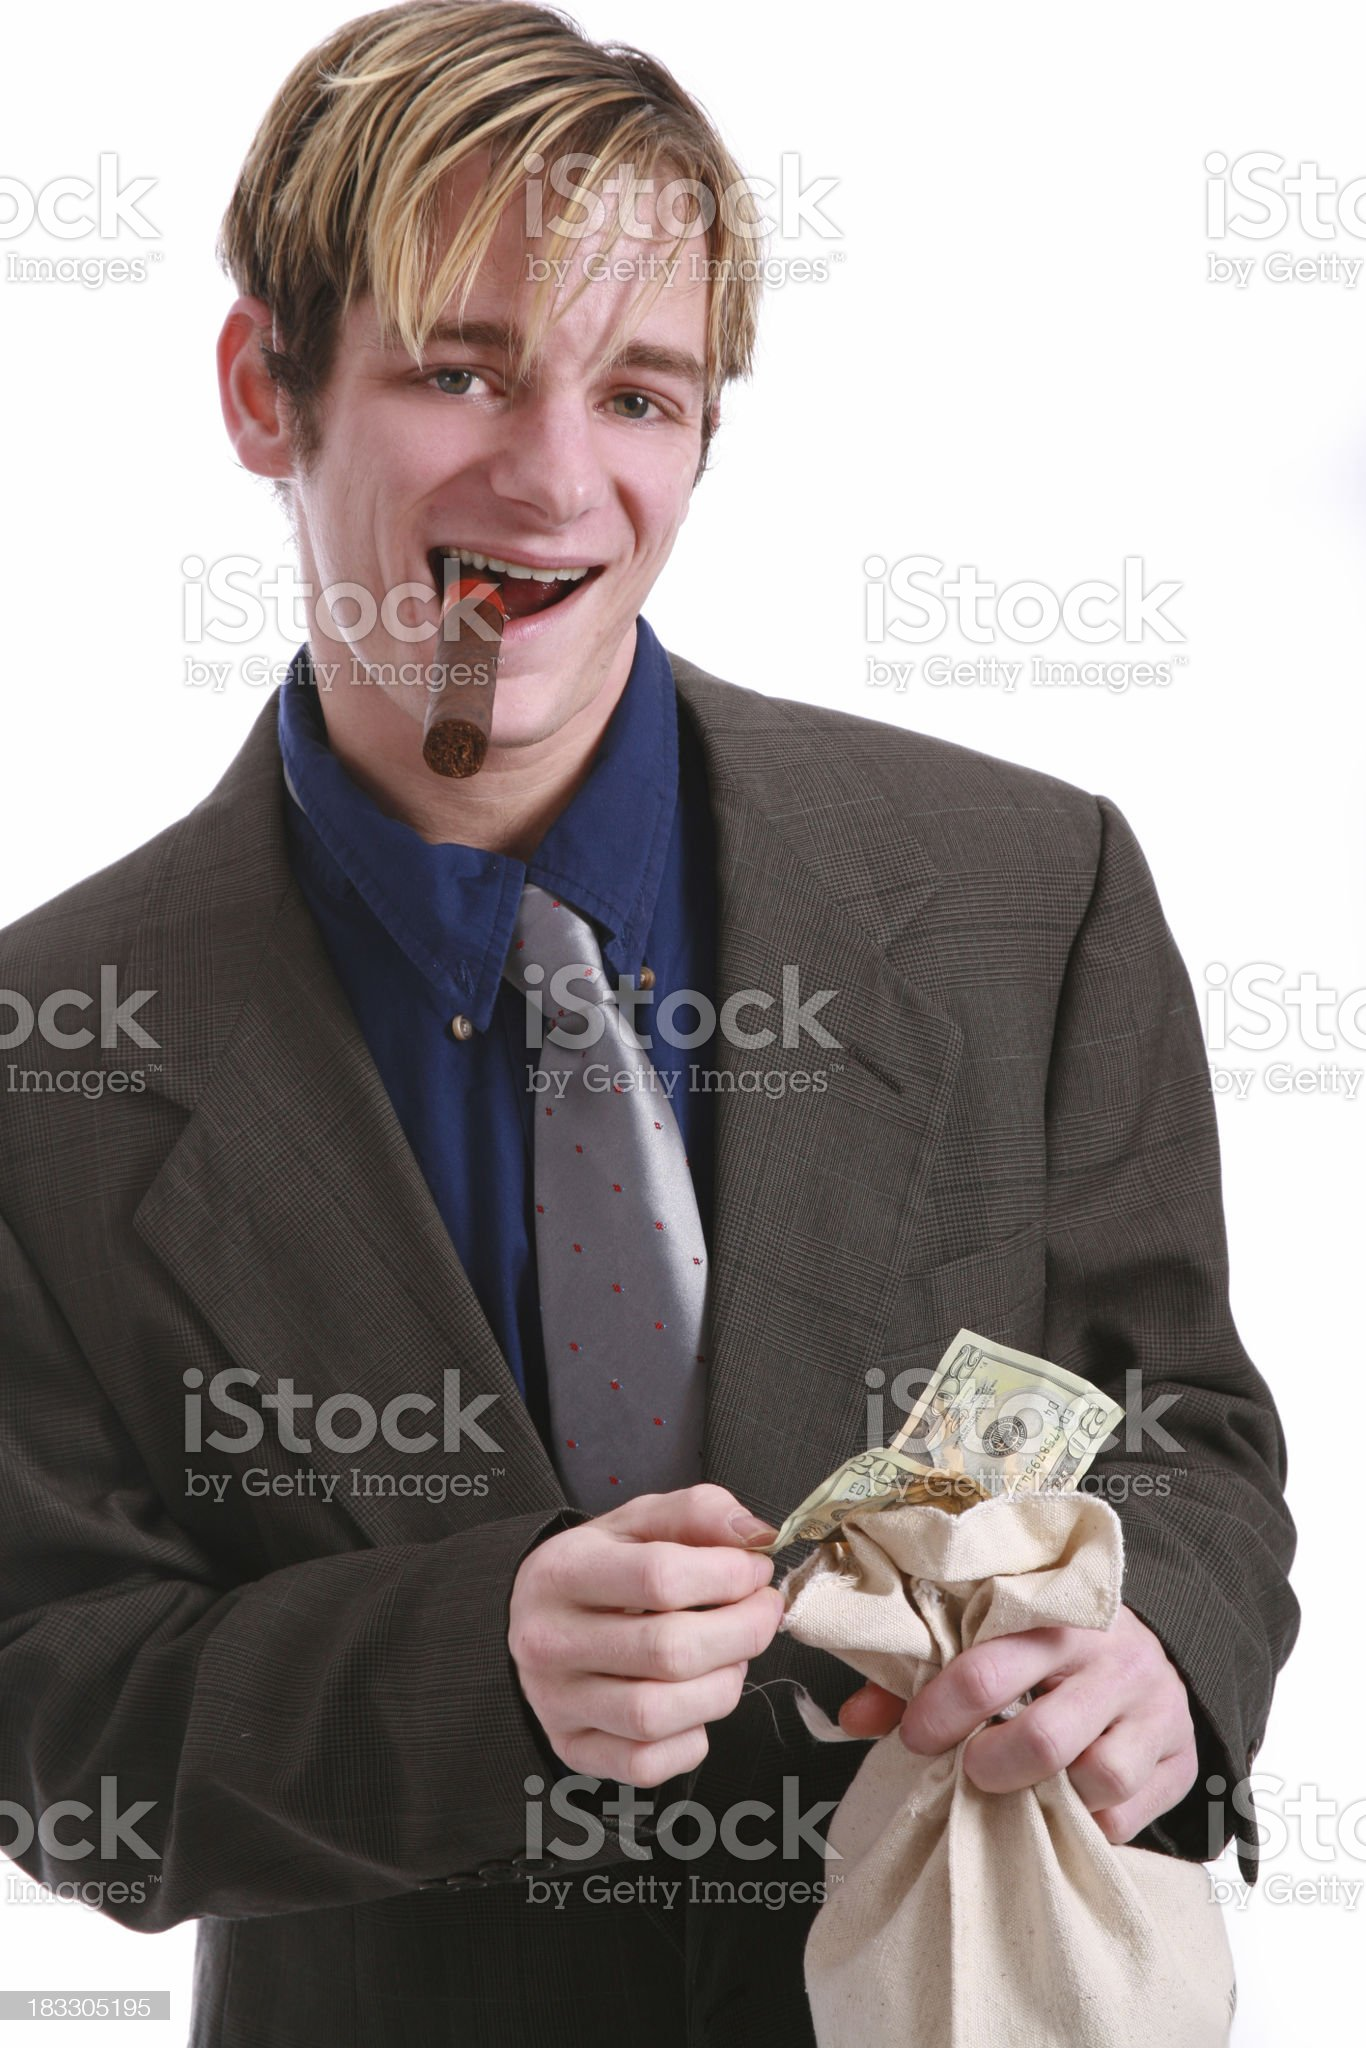 Young & Rich royalty-free stock photo